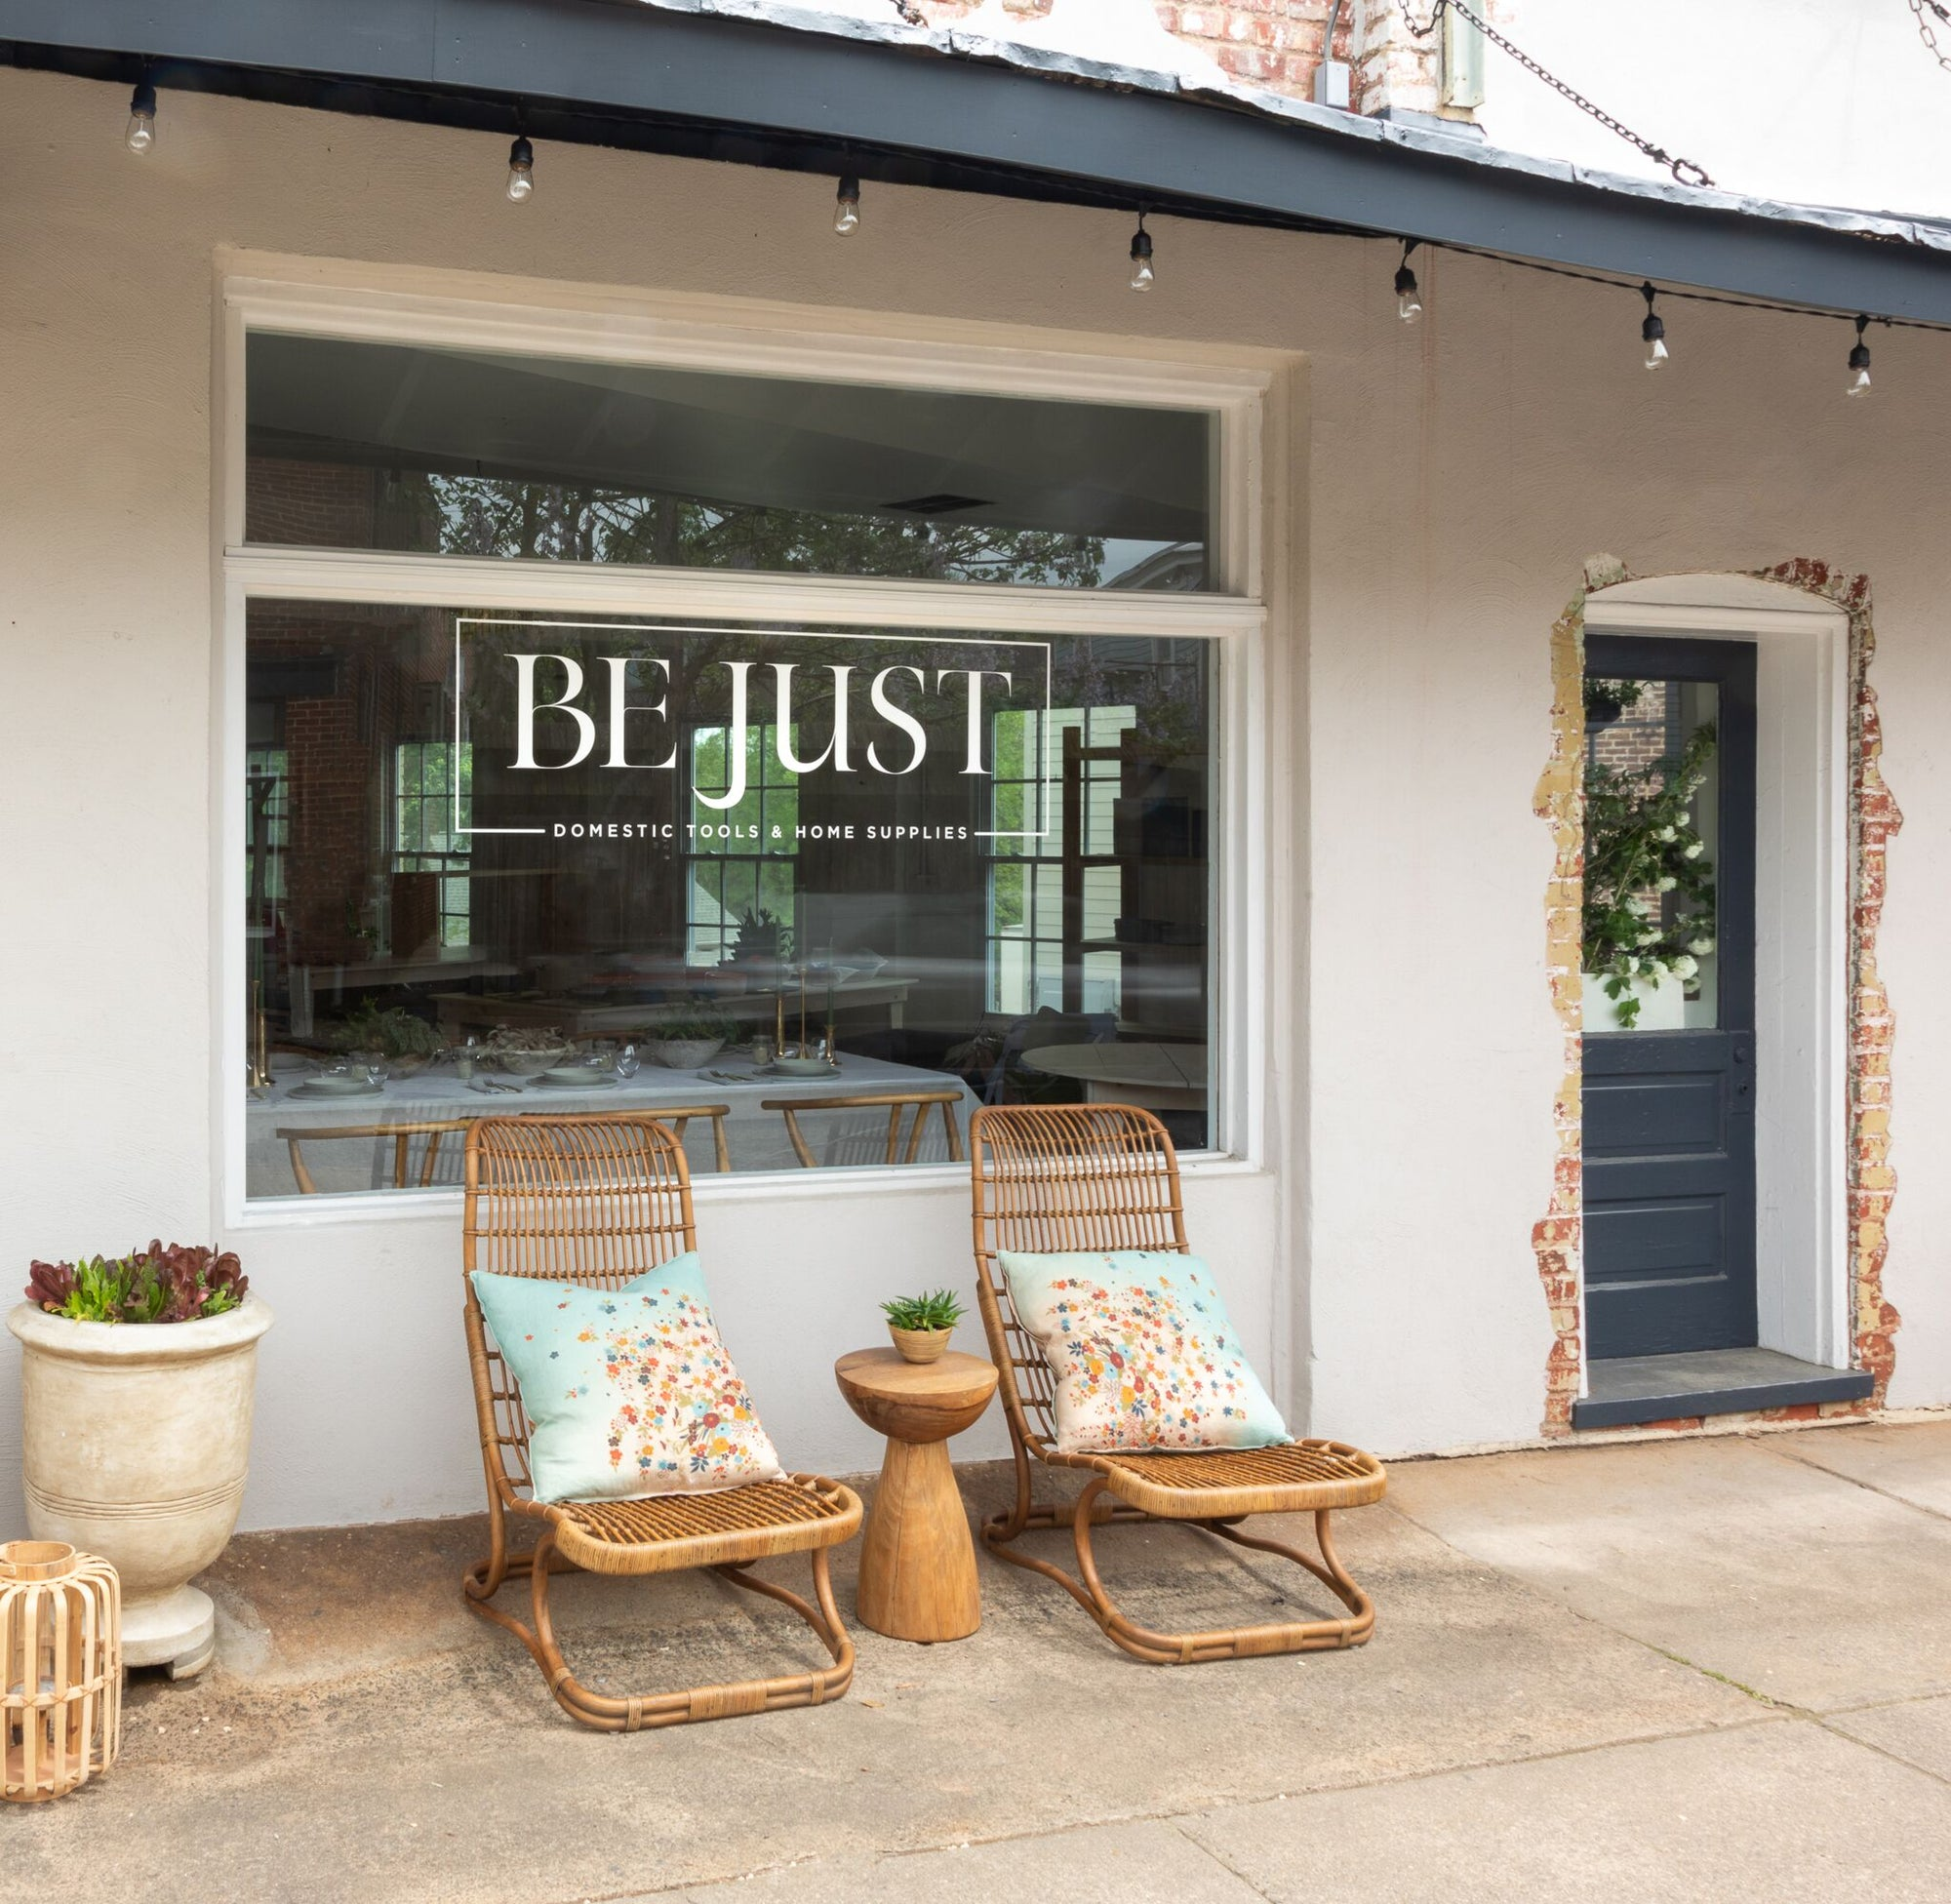 Where to Go? What to Eat? In Charlottesville, VA with Be Just